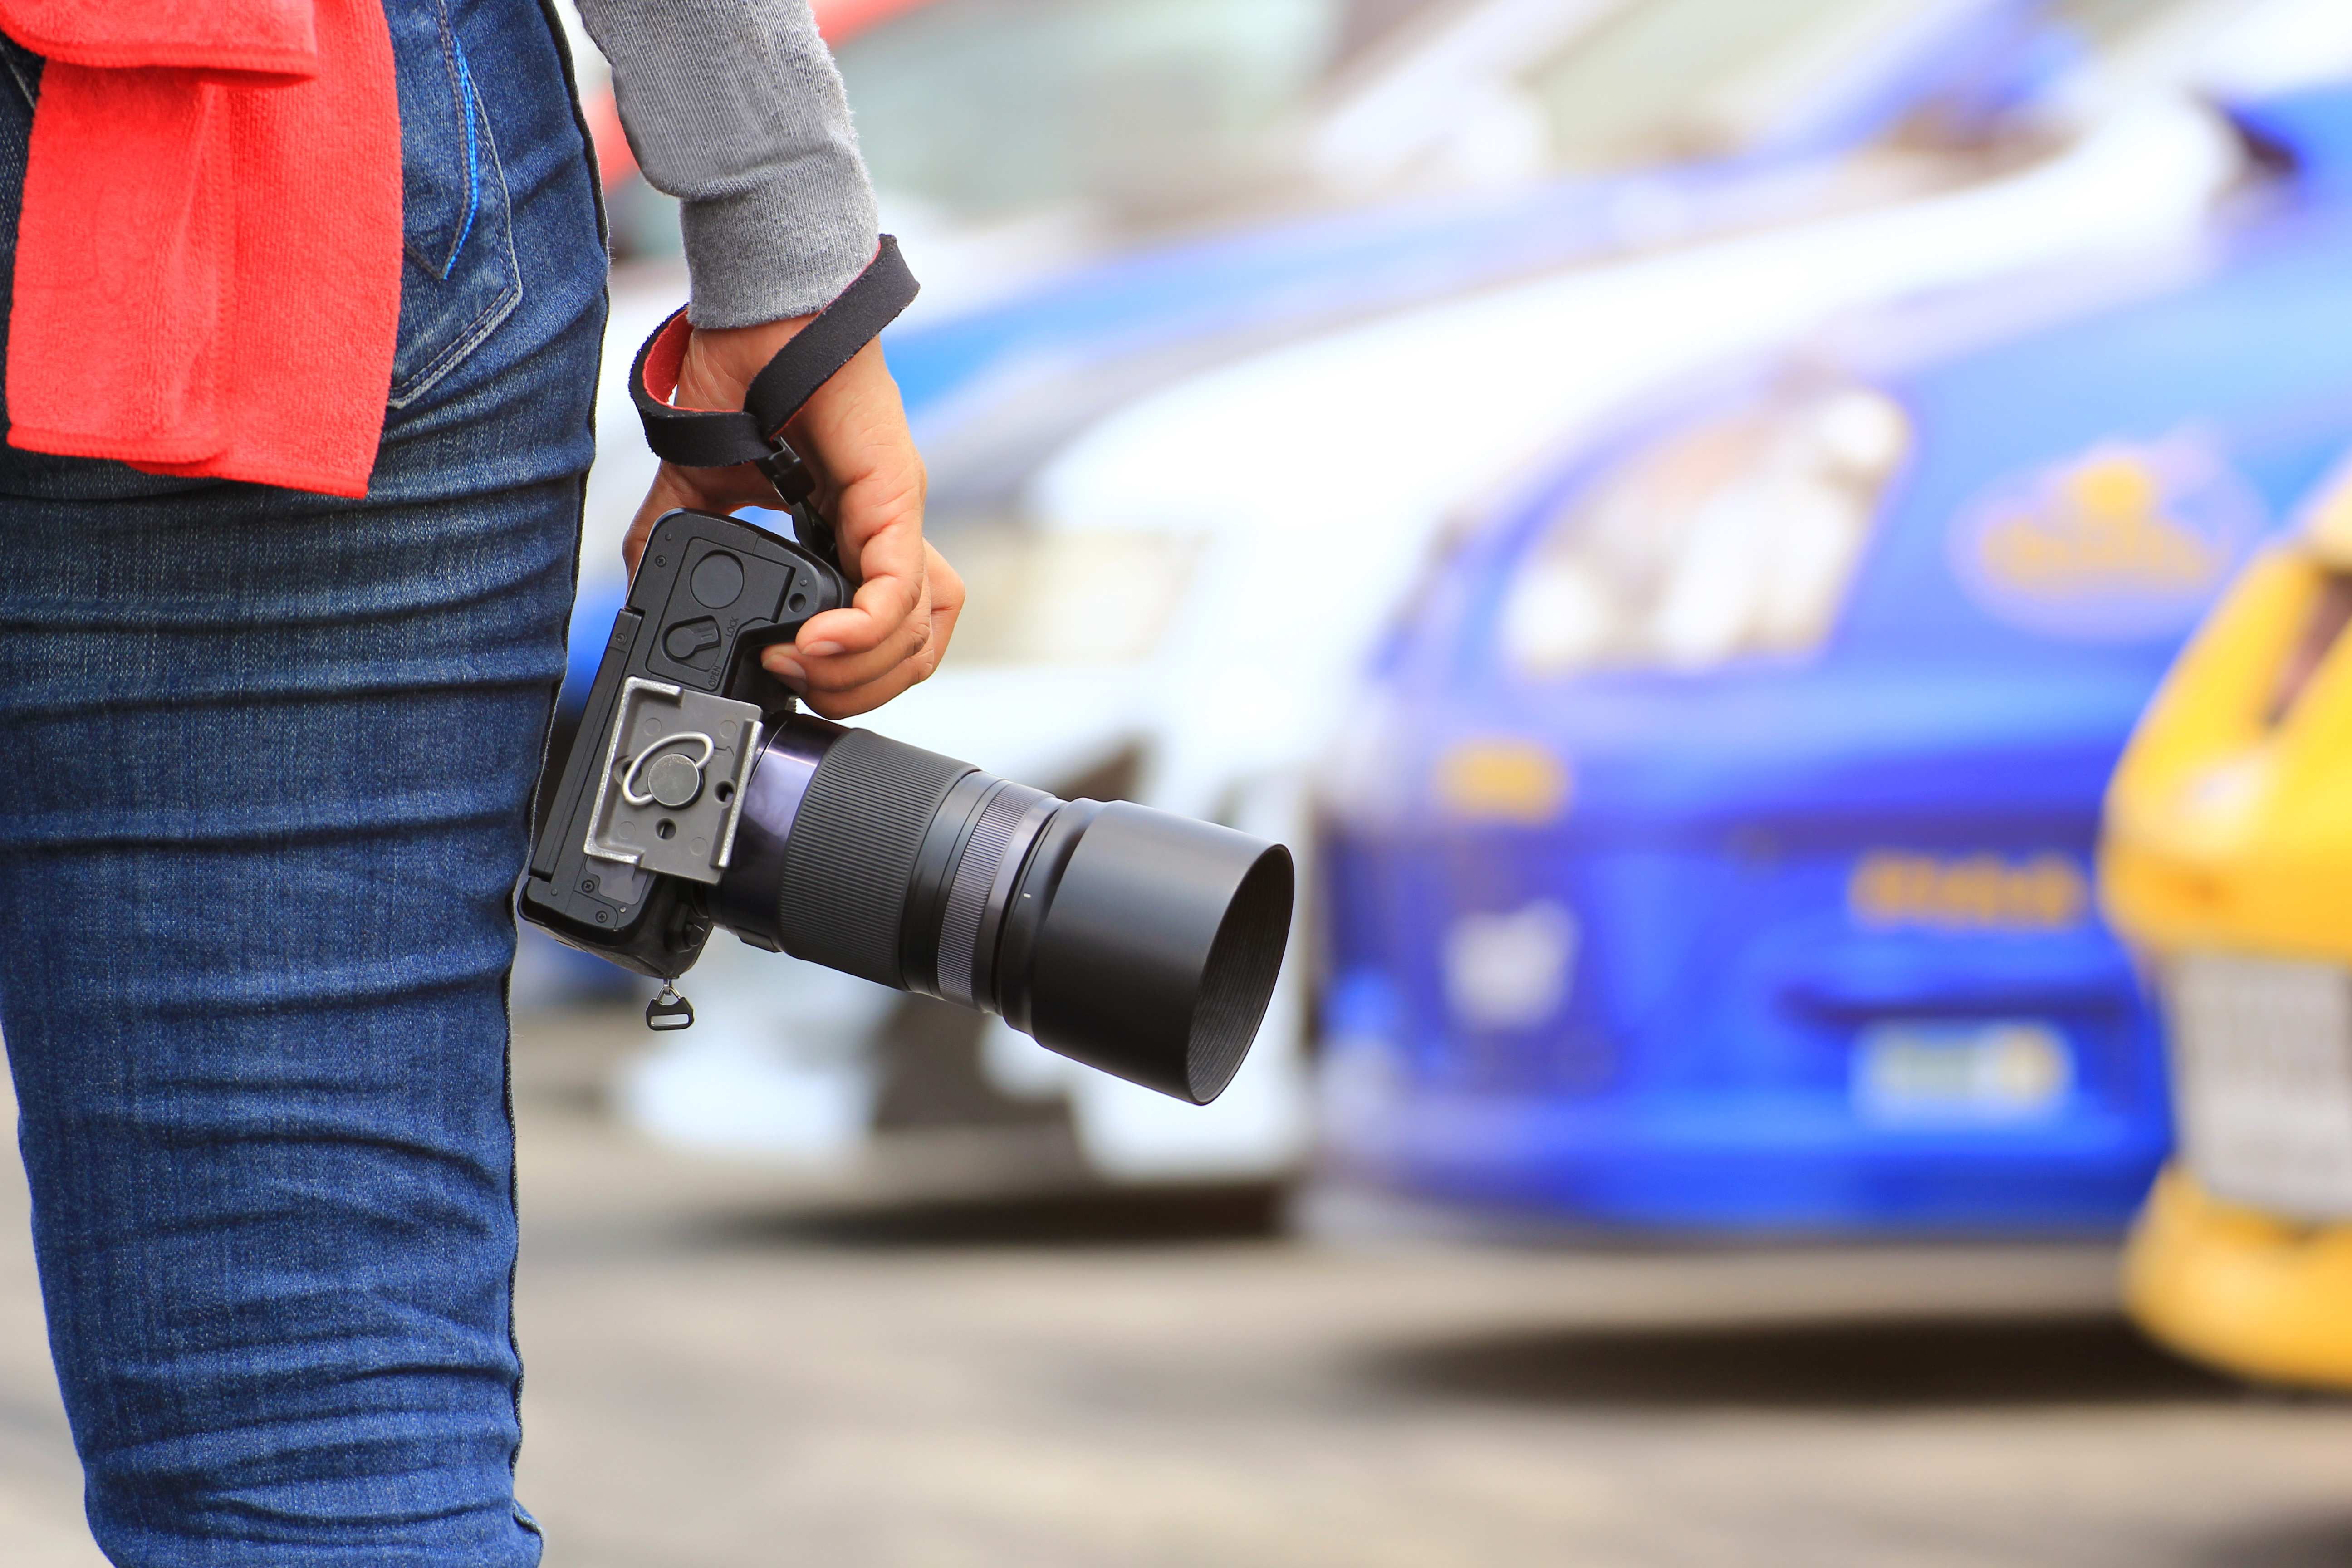 Vehicle photography with a purpose